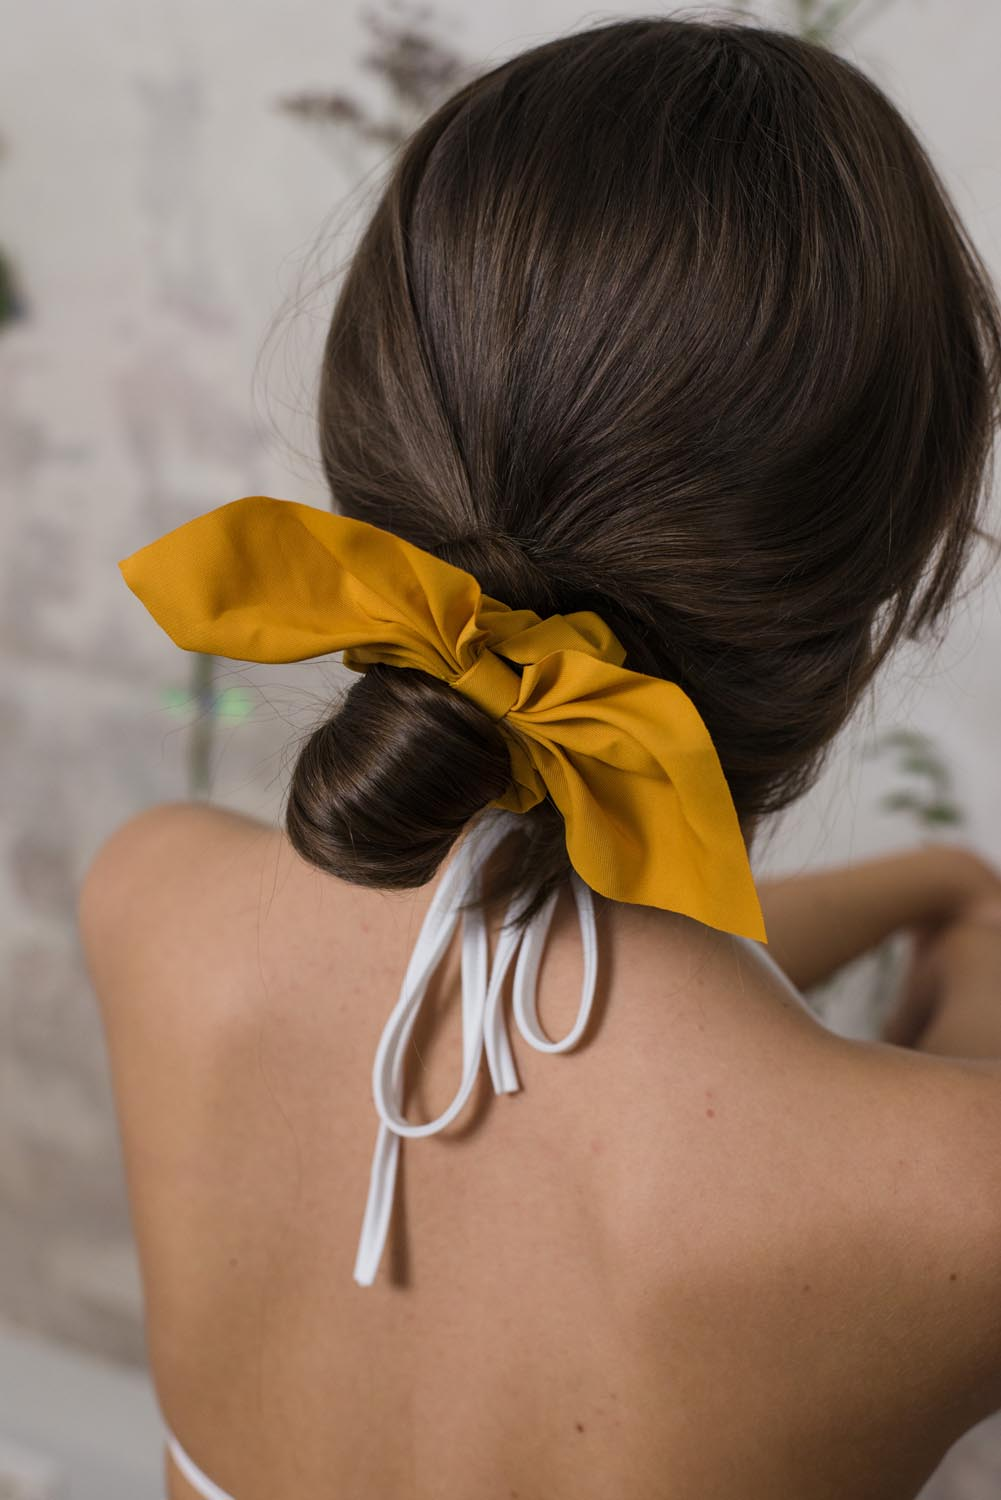 Mustard Hair Scrunchie